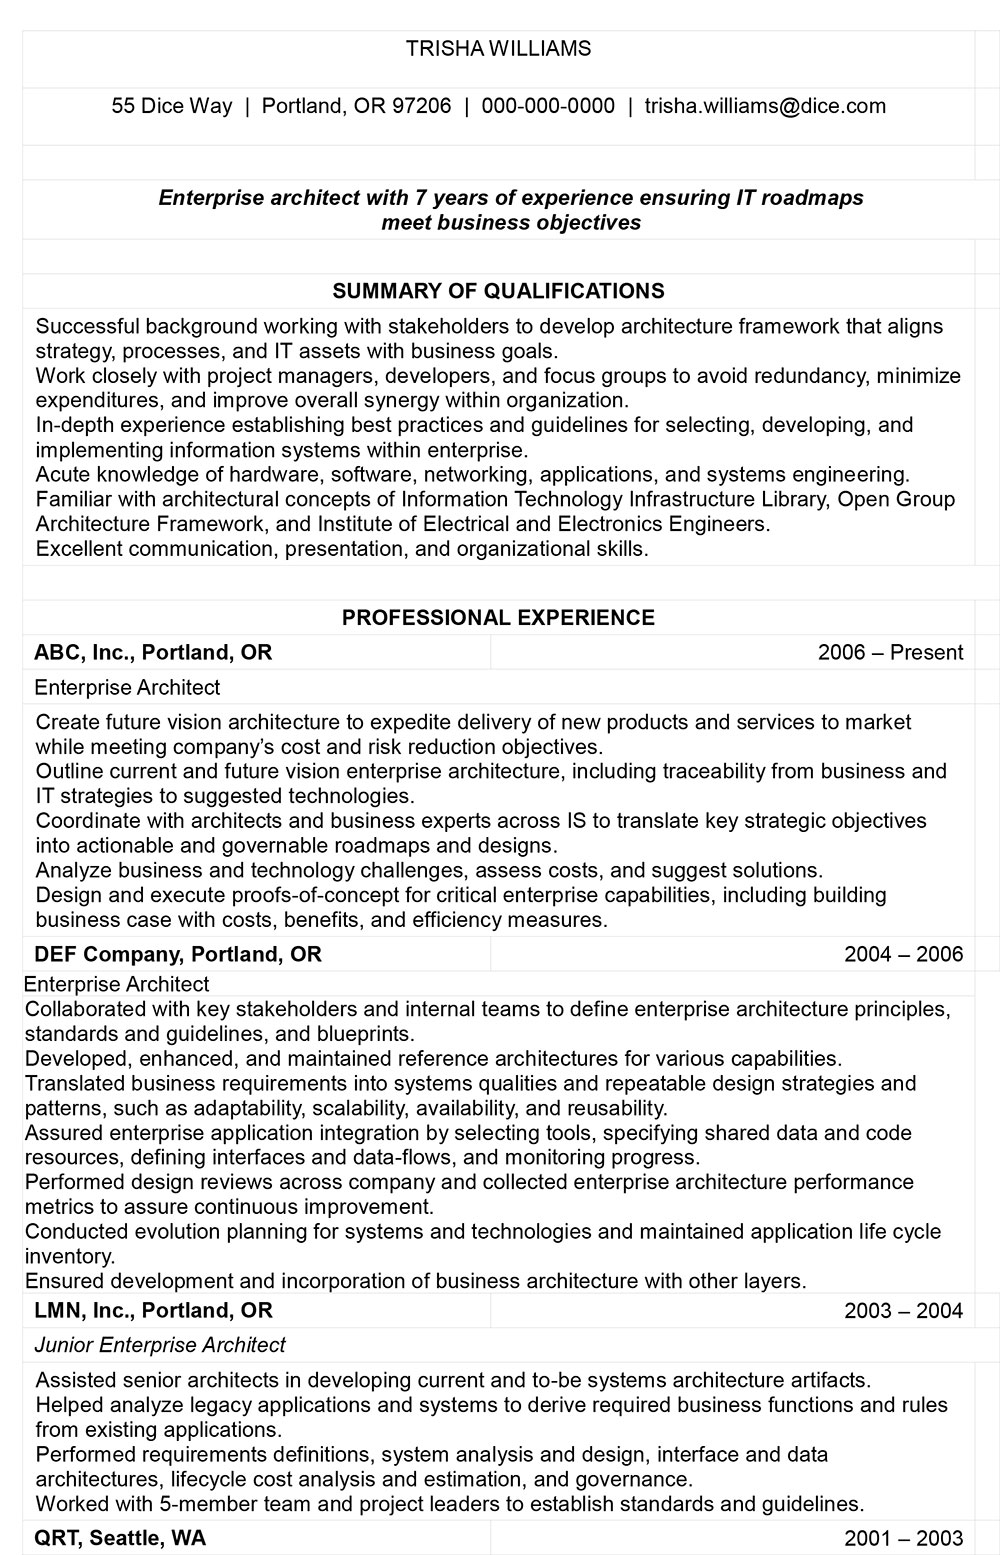 Enterprise-Architecture-Resume-1 The architecture resume you are hired with (templates included)